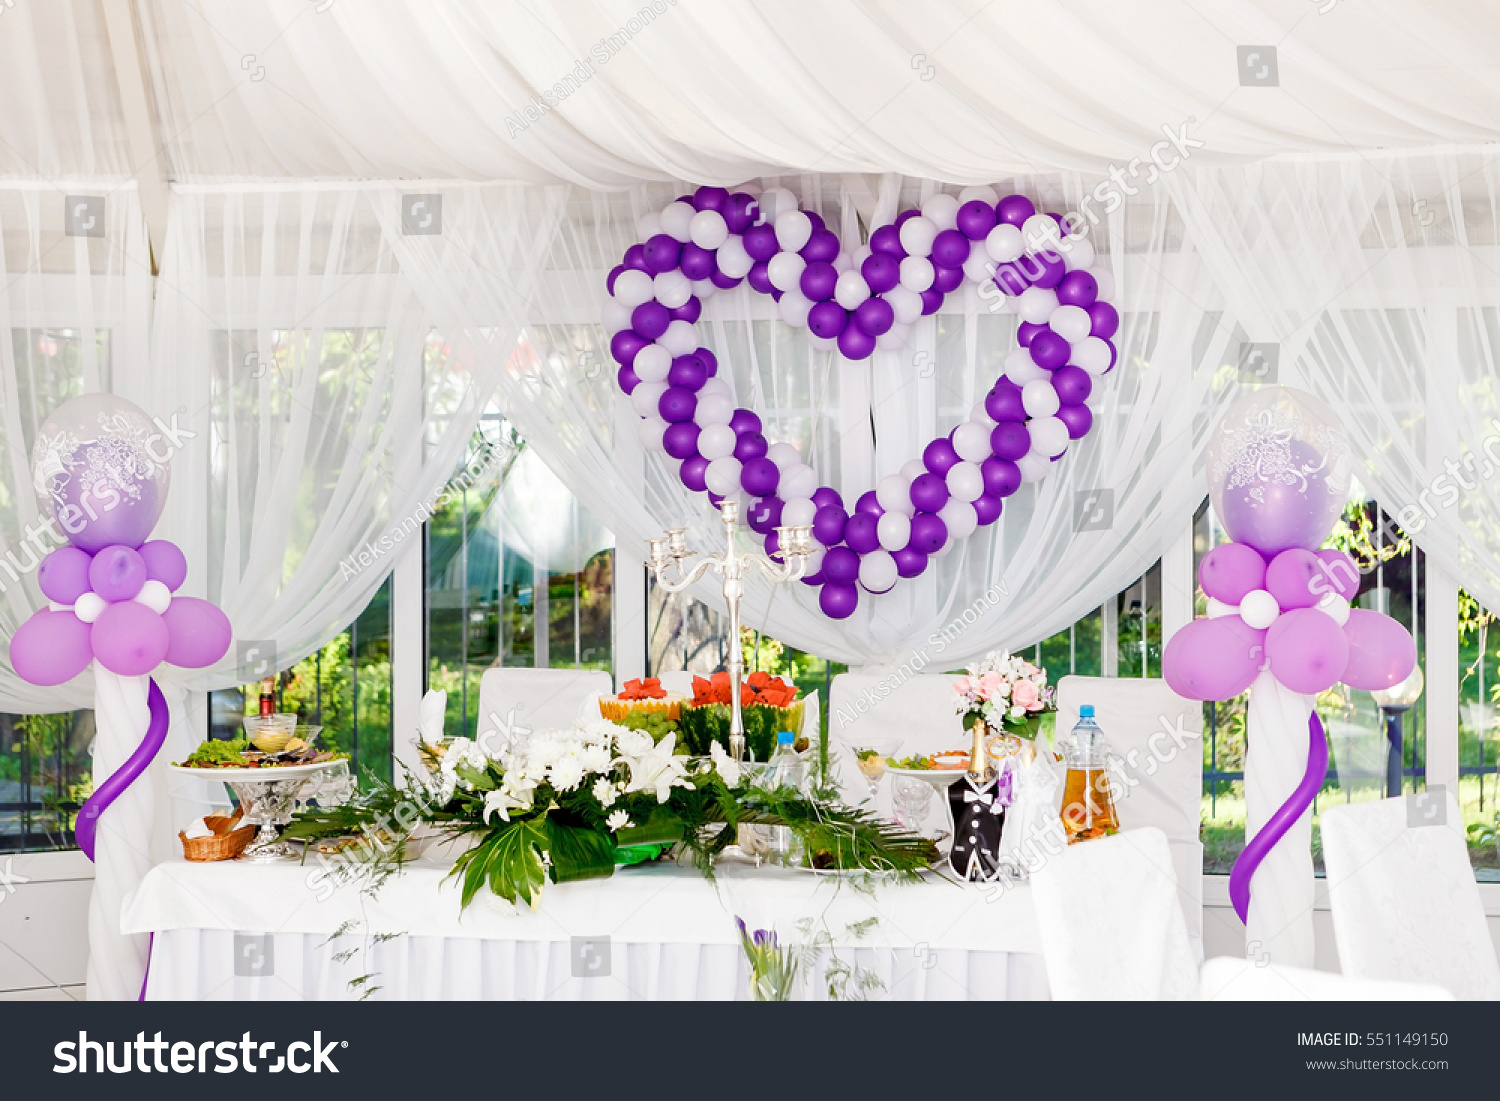 Beautiful wedding decorations heart white purple stock photo beautiful wedding decorations heart of white and purple balloons on a celebratory table junglespirit Choice Image